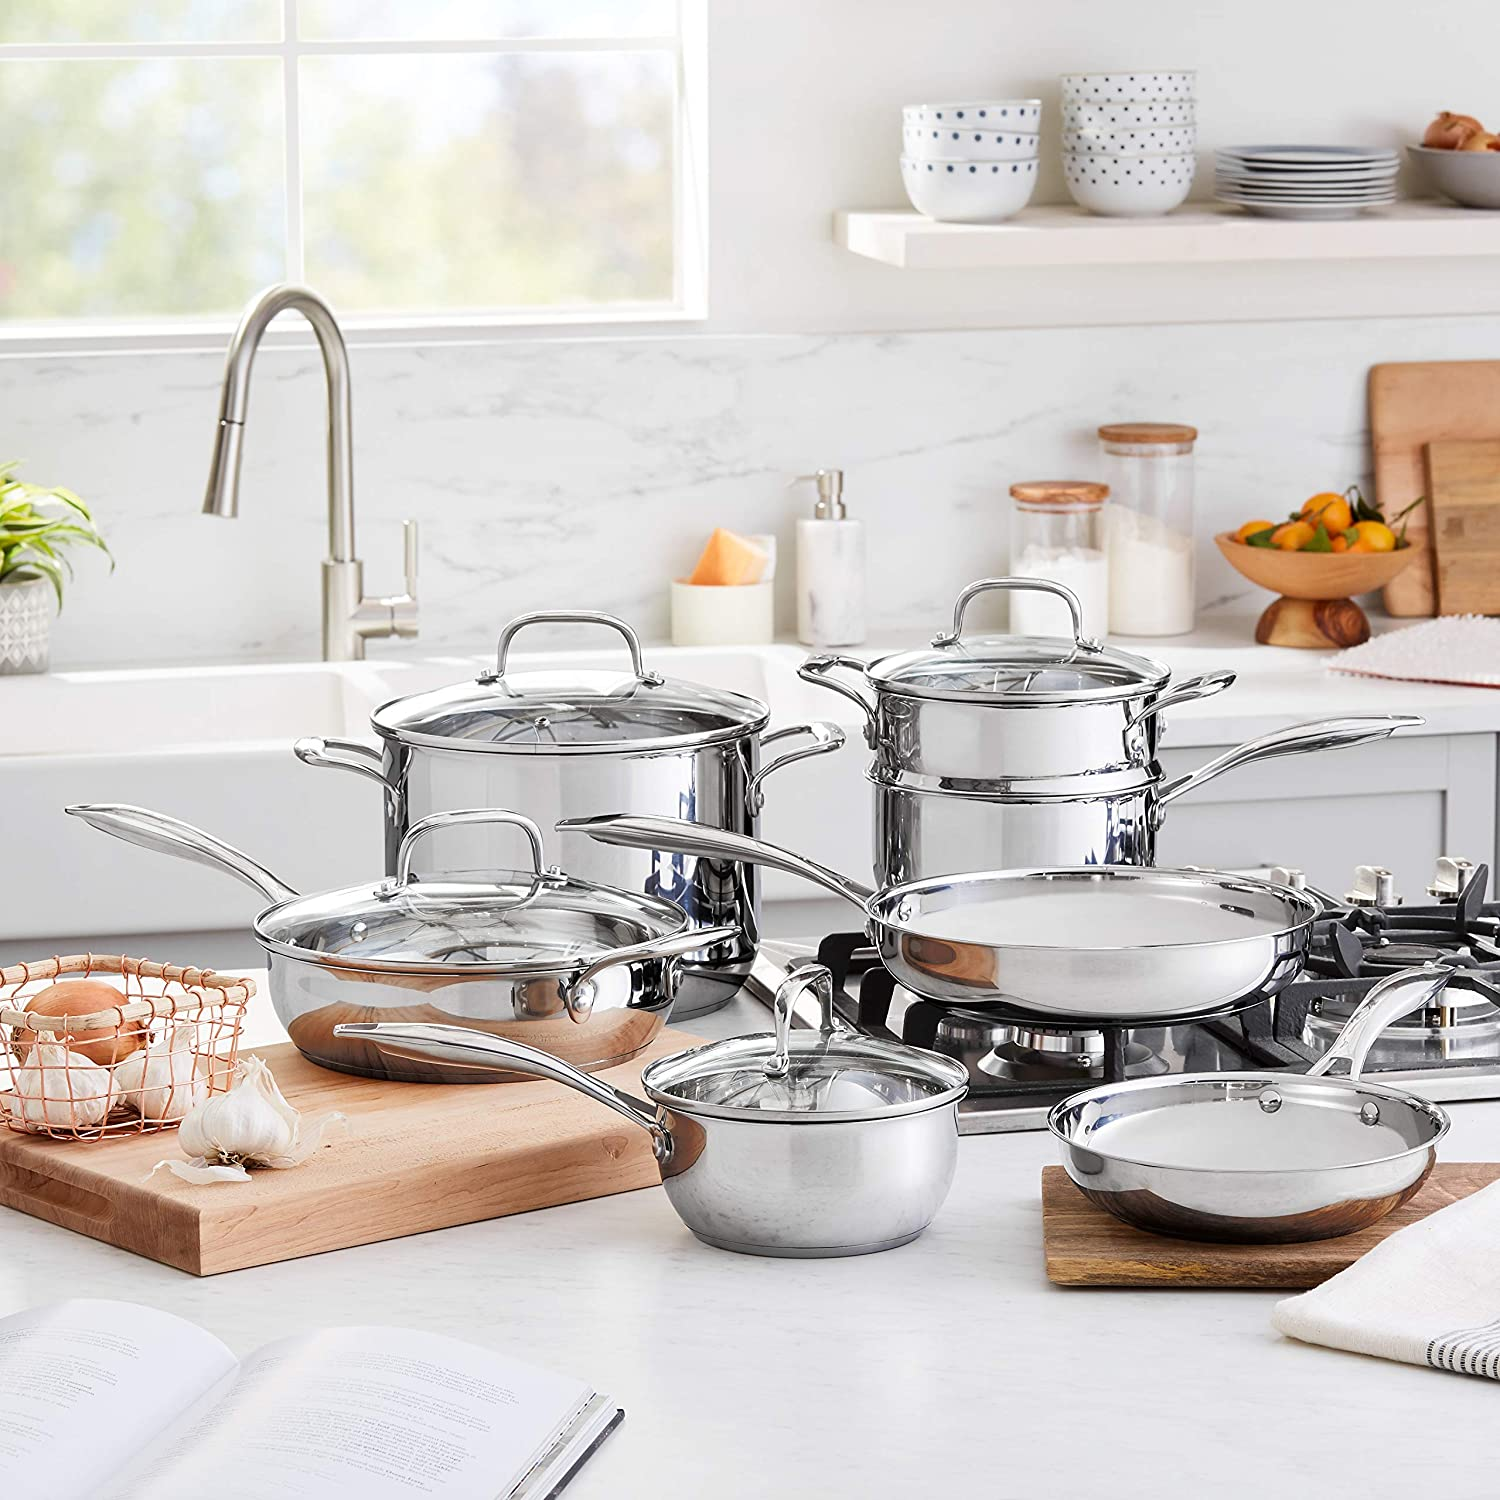 AmazonBasics Best cookware for gas stove